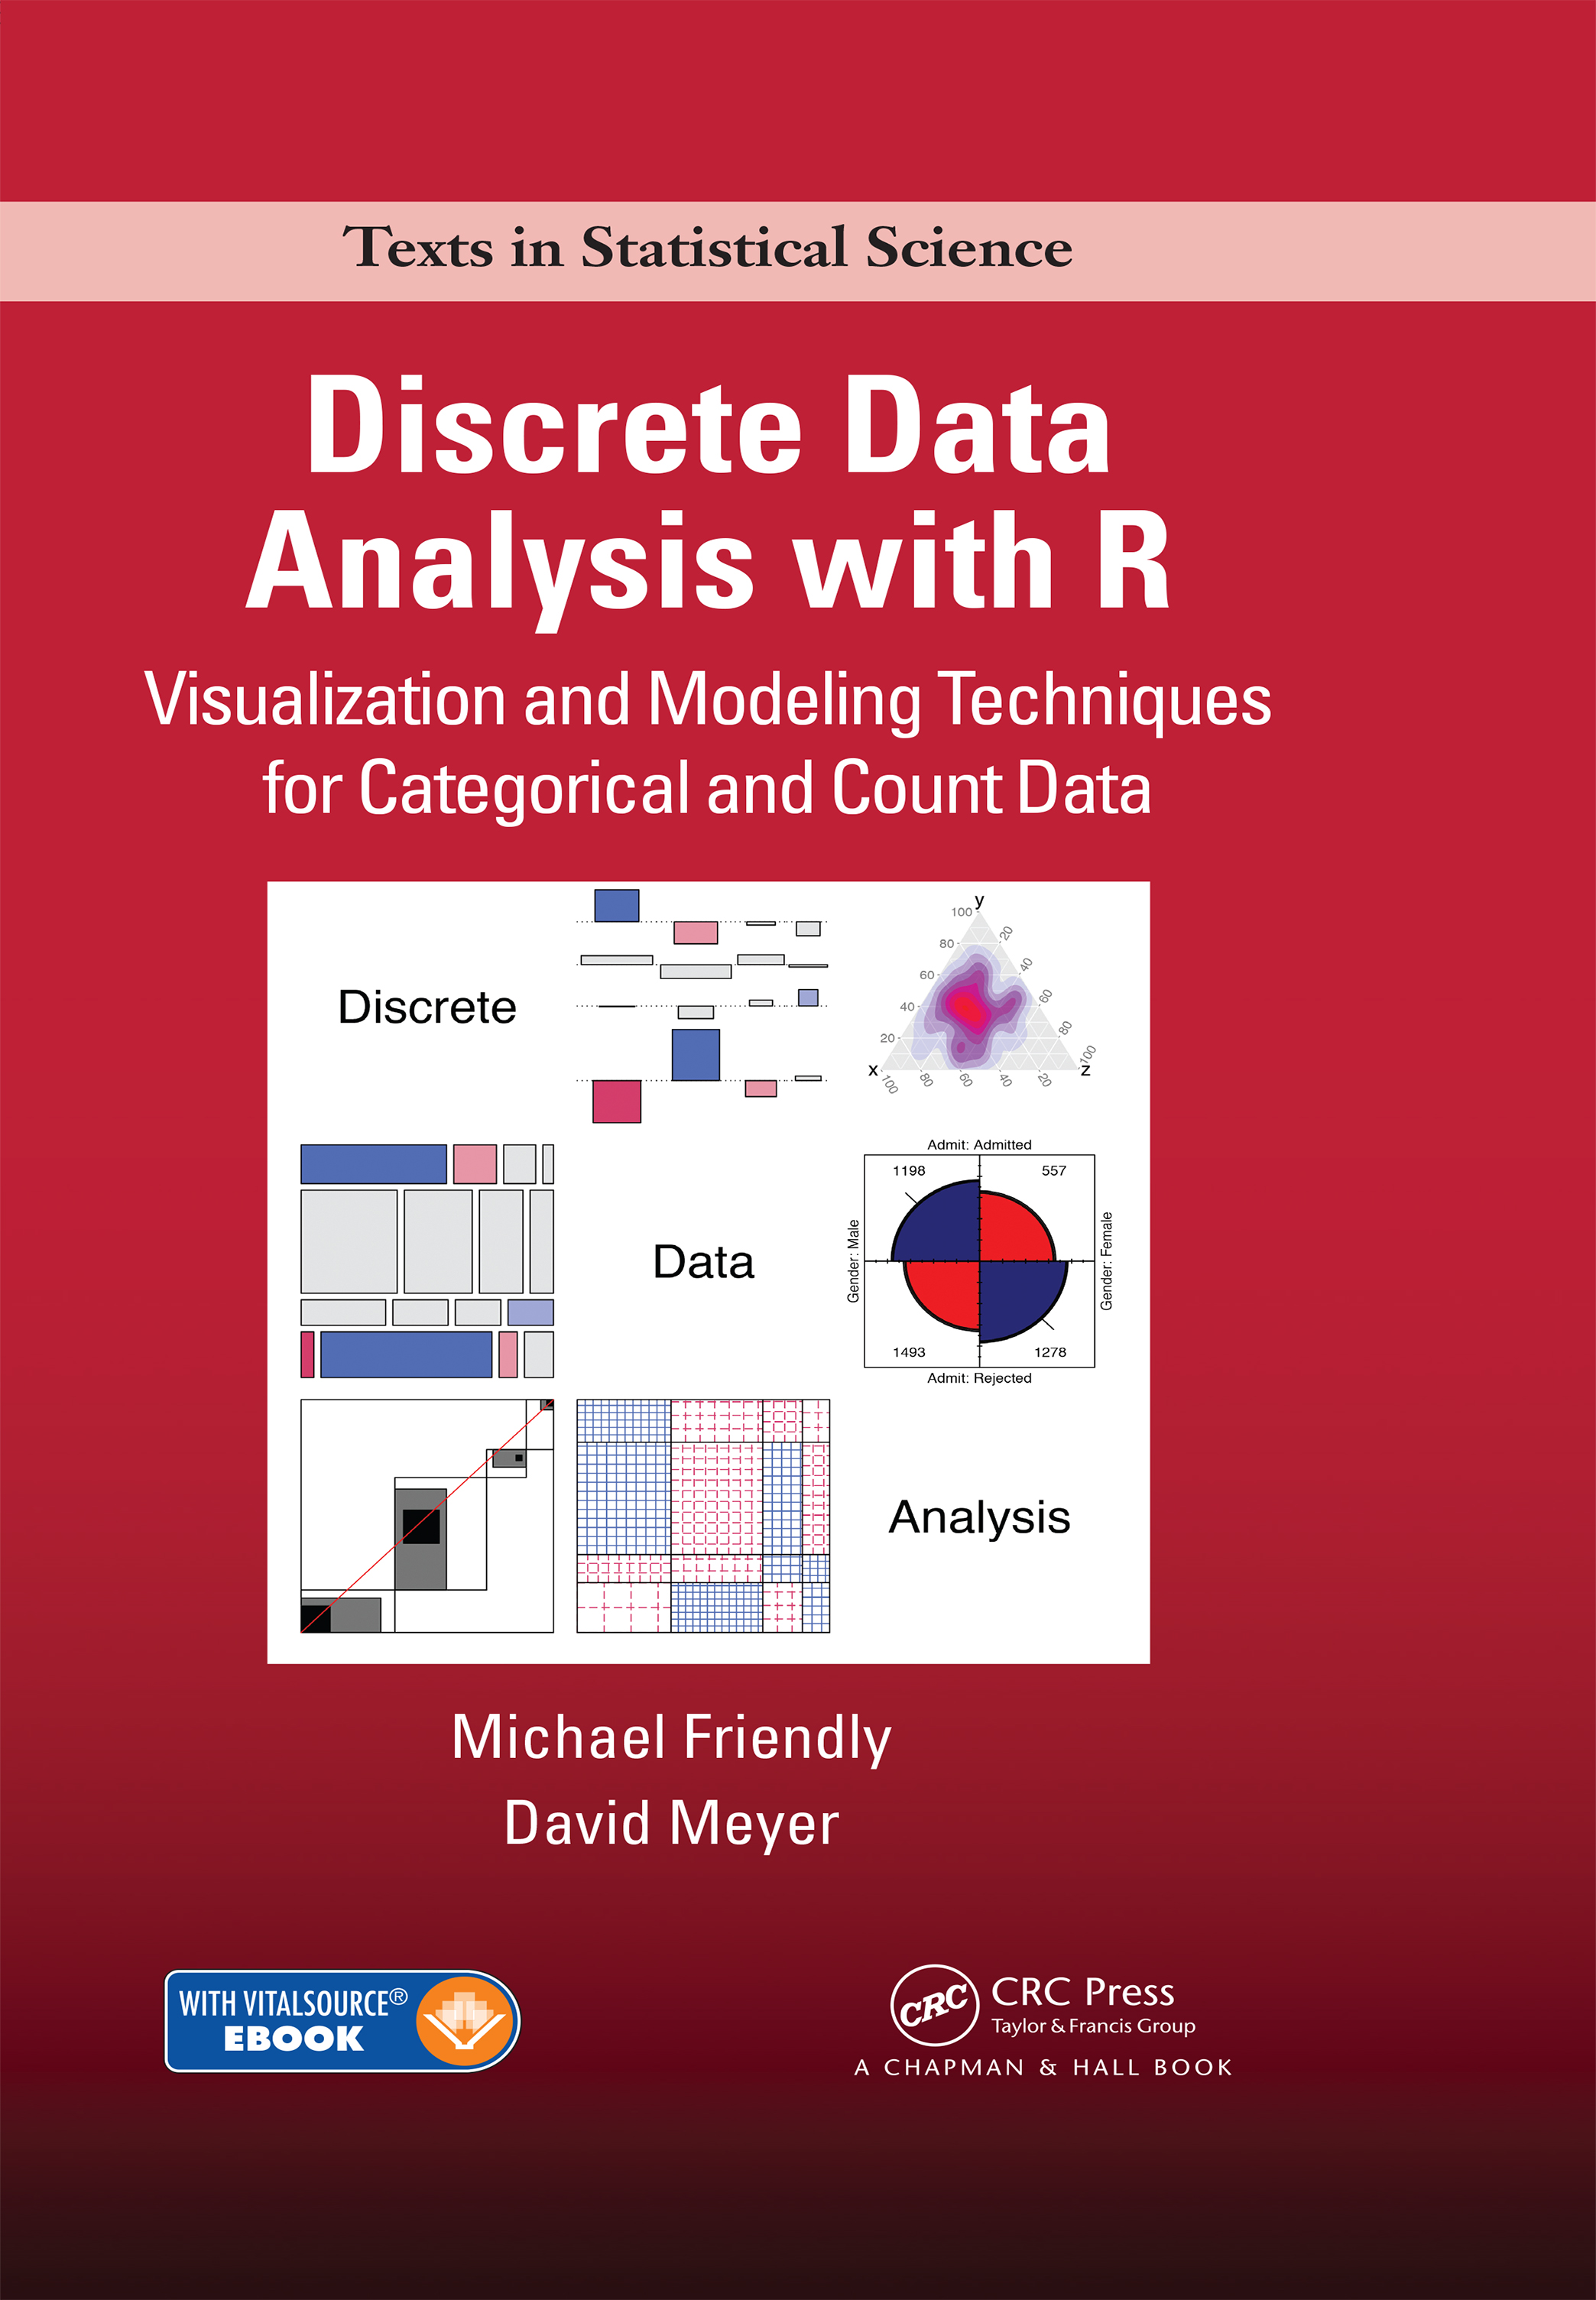 Discrete Data Analysis with R: Visualization and Modeling Techniques for Categorical and Count Data (Pack - Book and Ebook) book cover